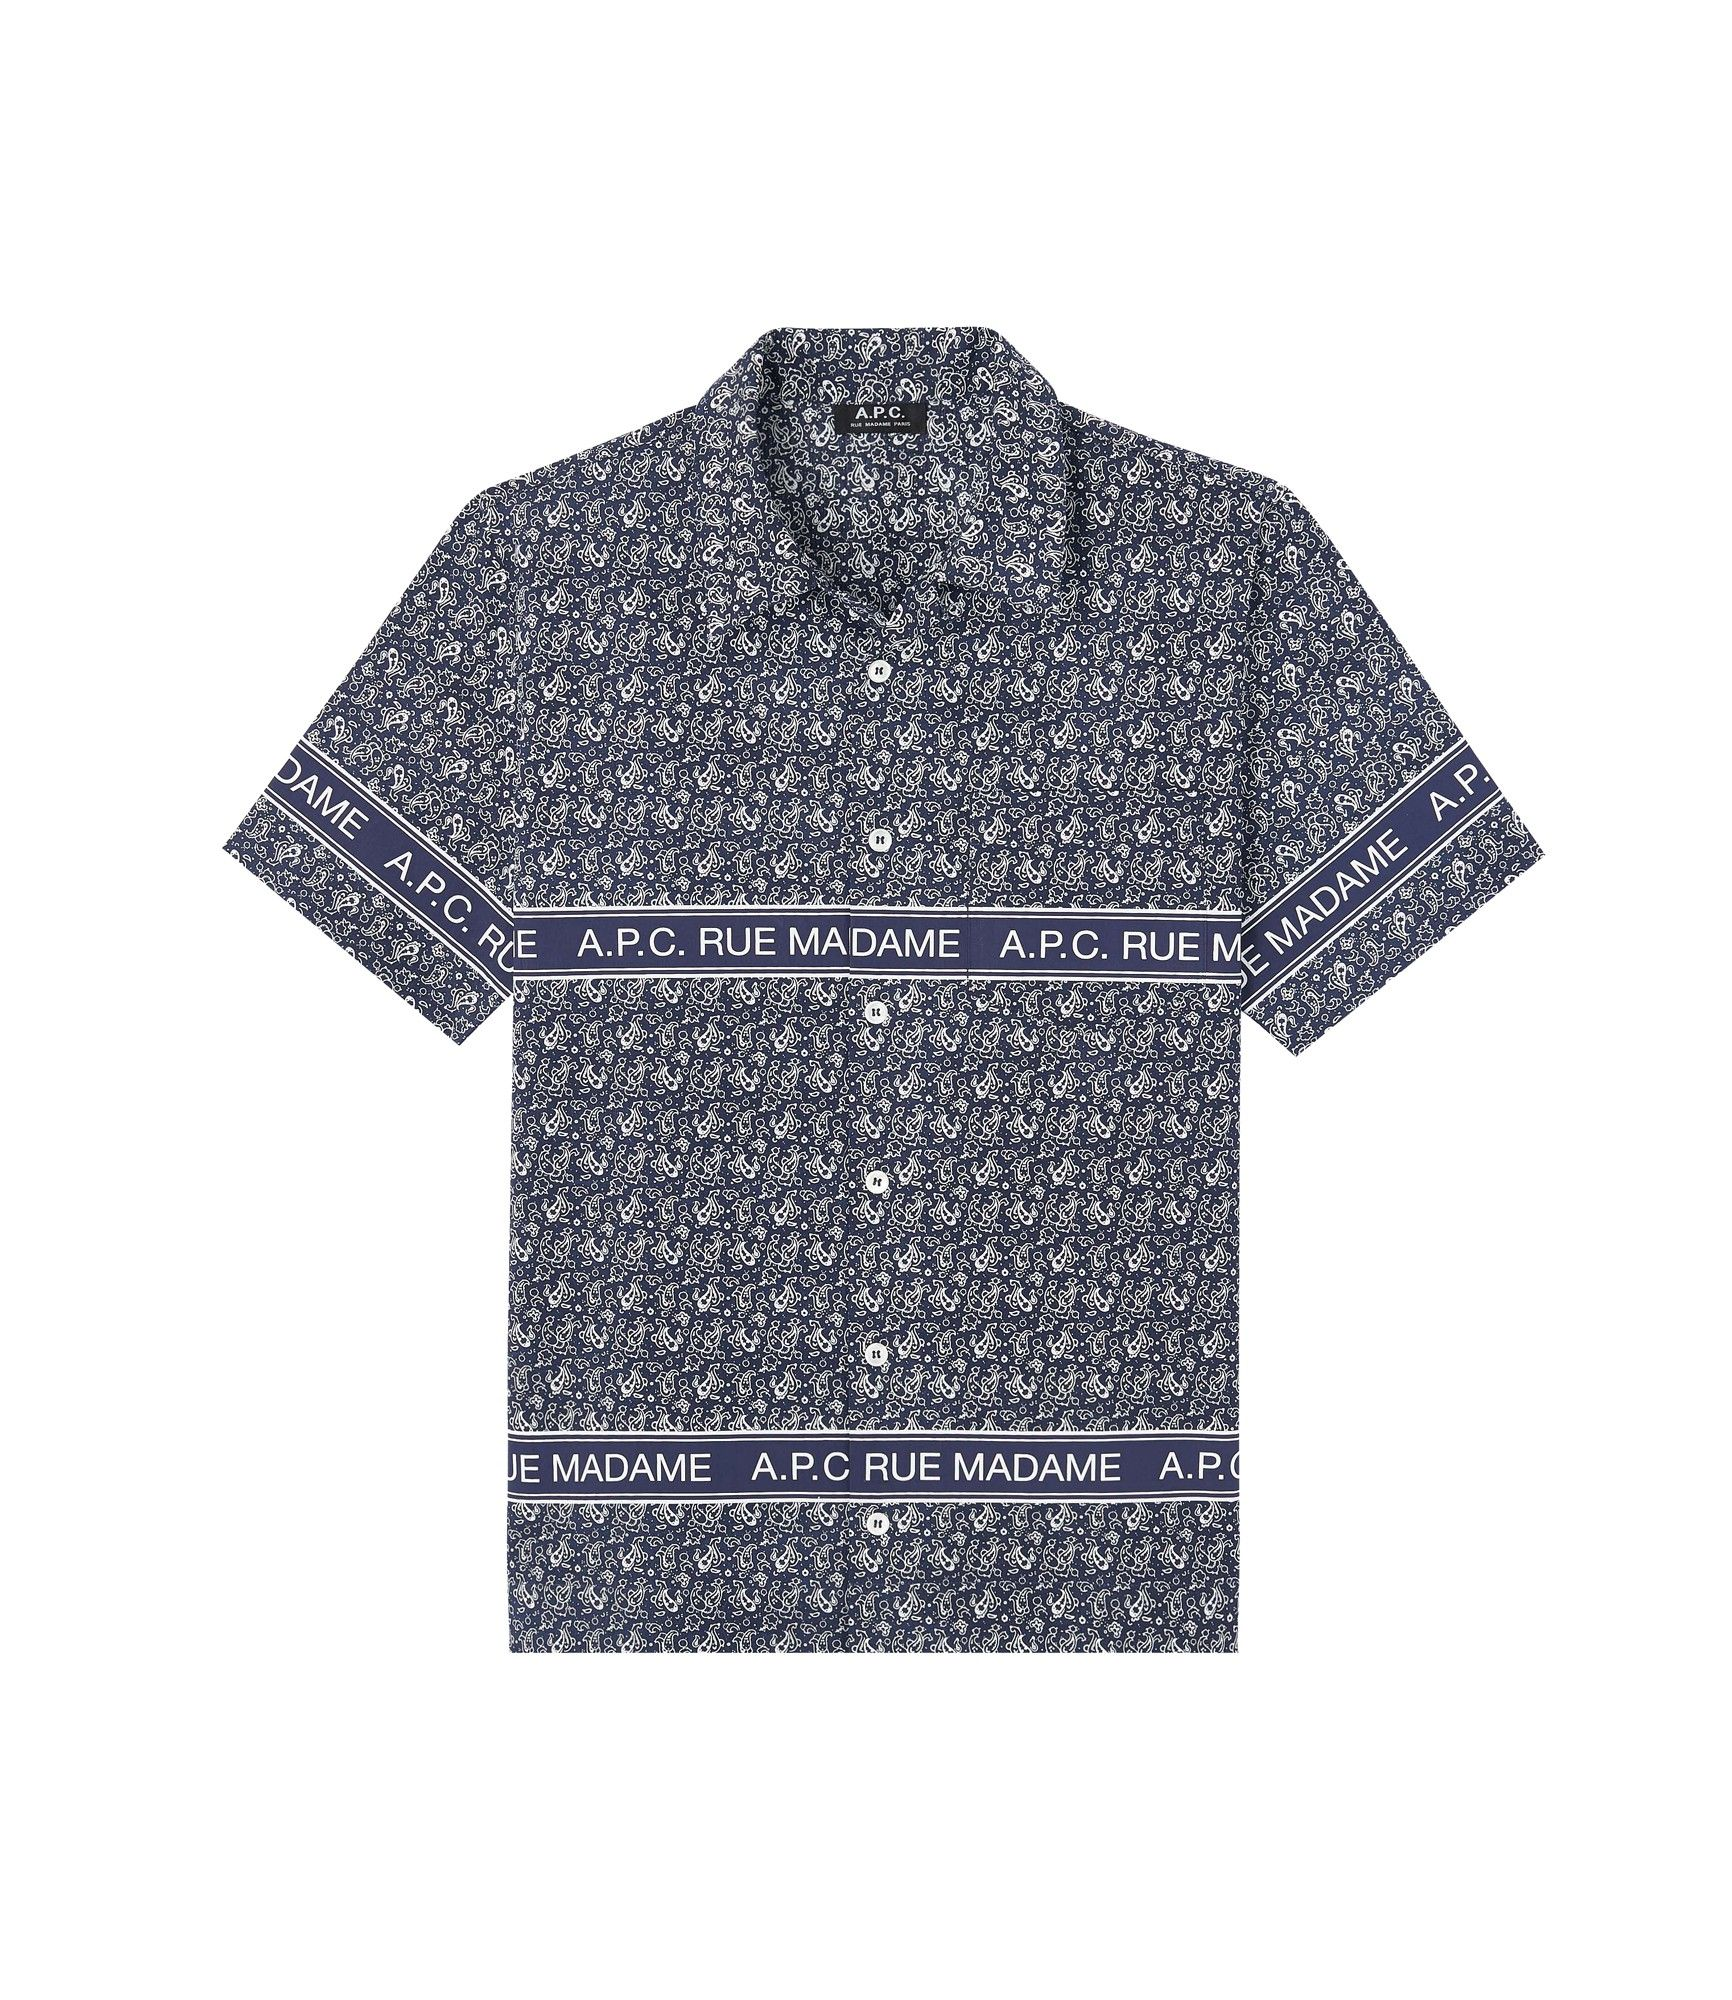 APC bandana print shirt - €175 - It's suddenly become a lot easier to wear this season's bandana trend on a shirt